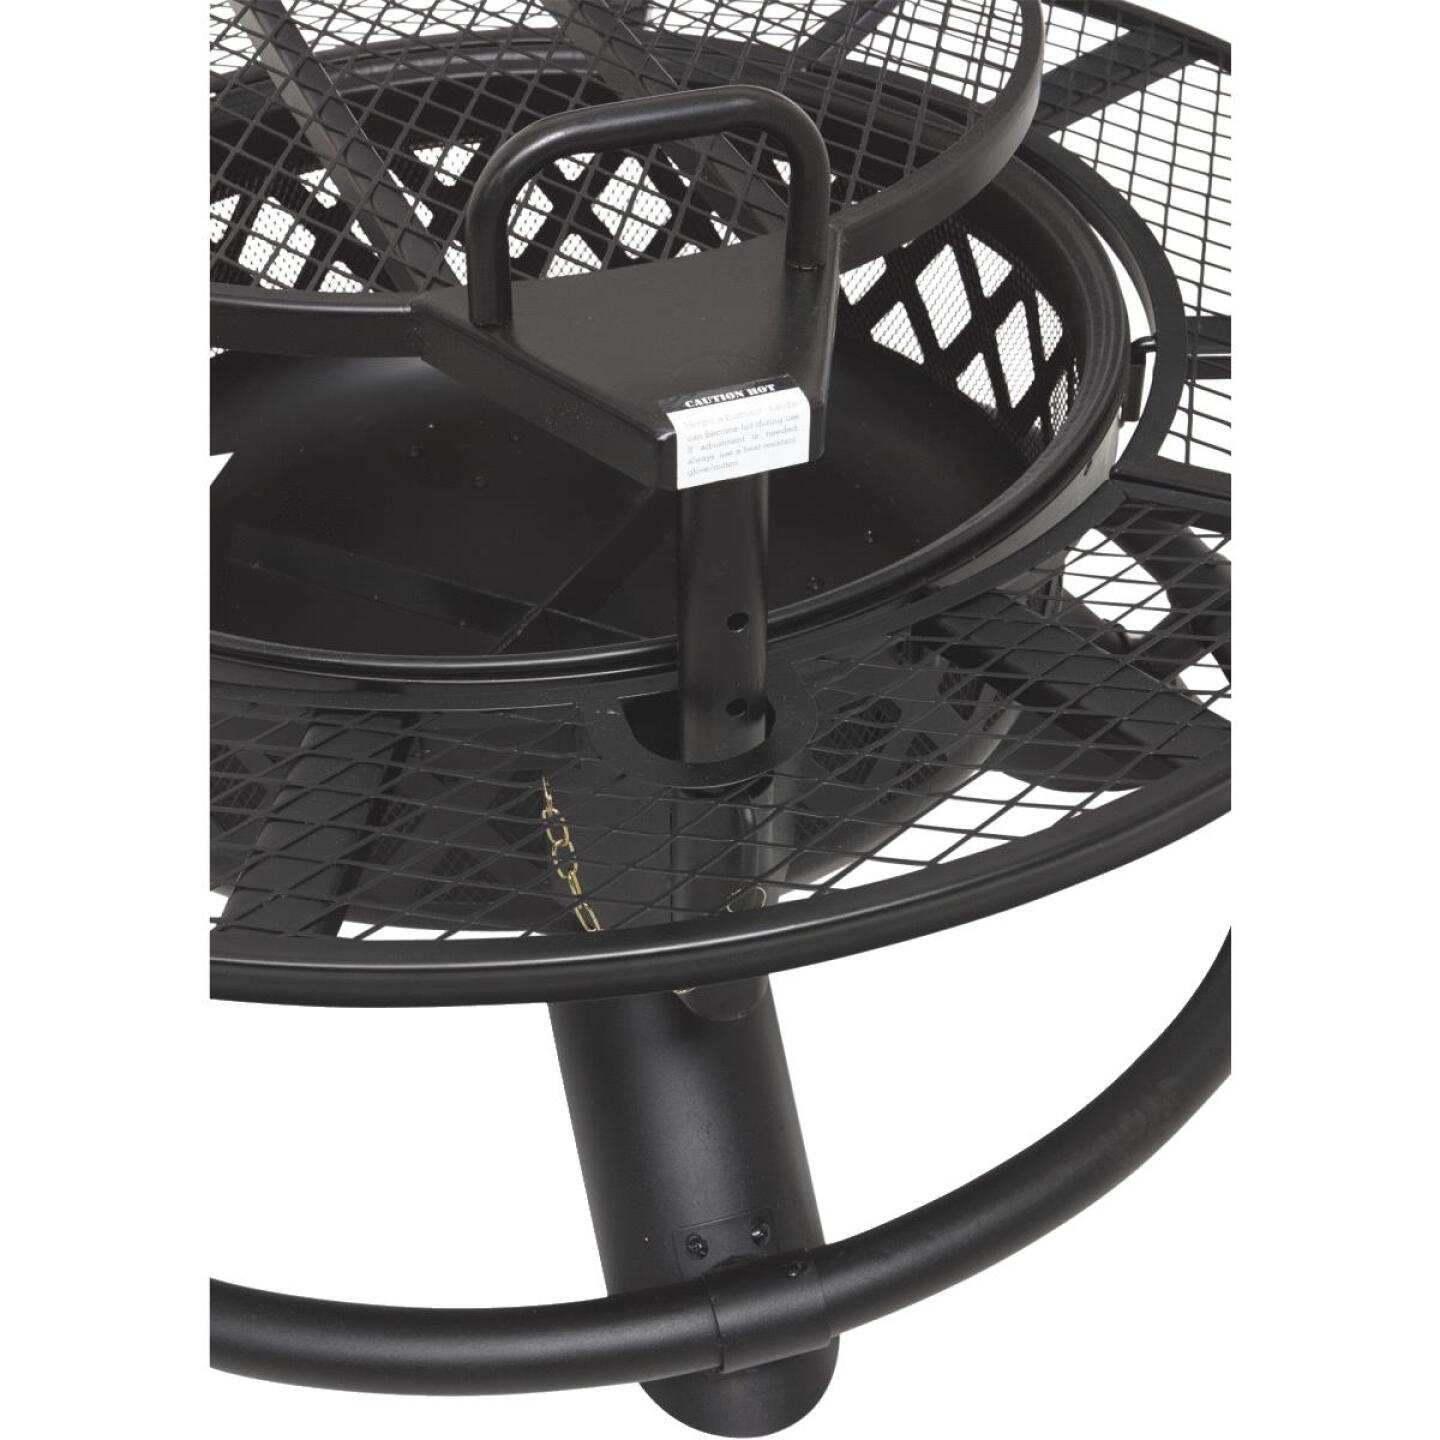 Big Horn 47 In. Camp Black Round Steel Fire Pit Image 4